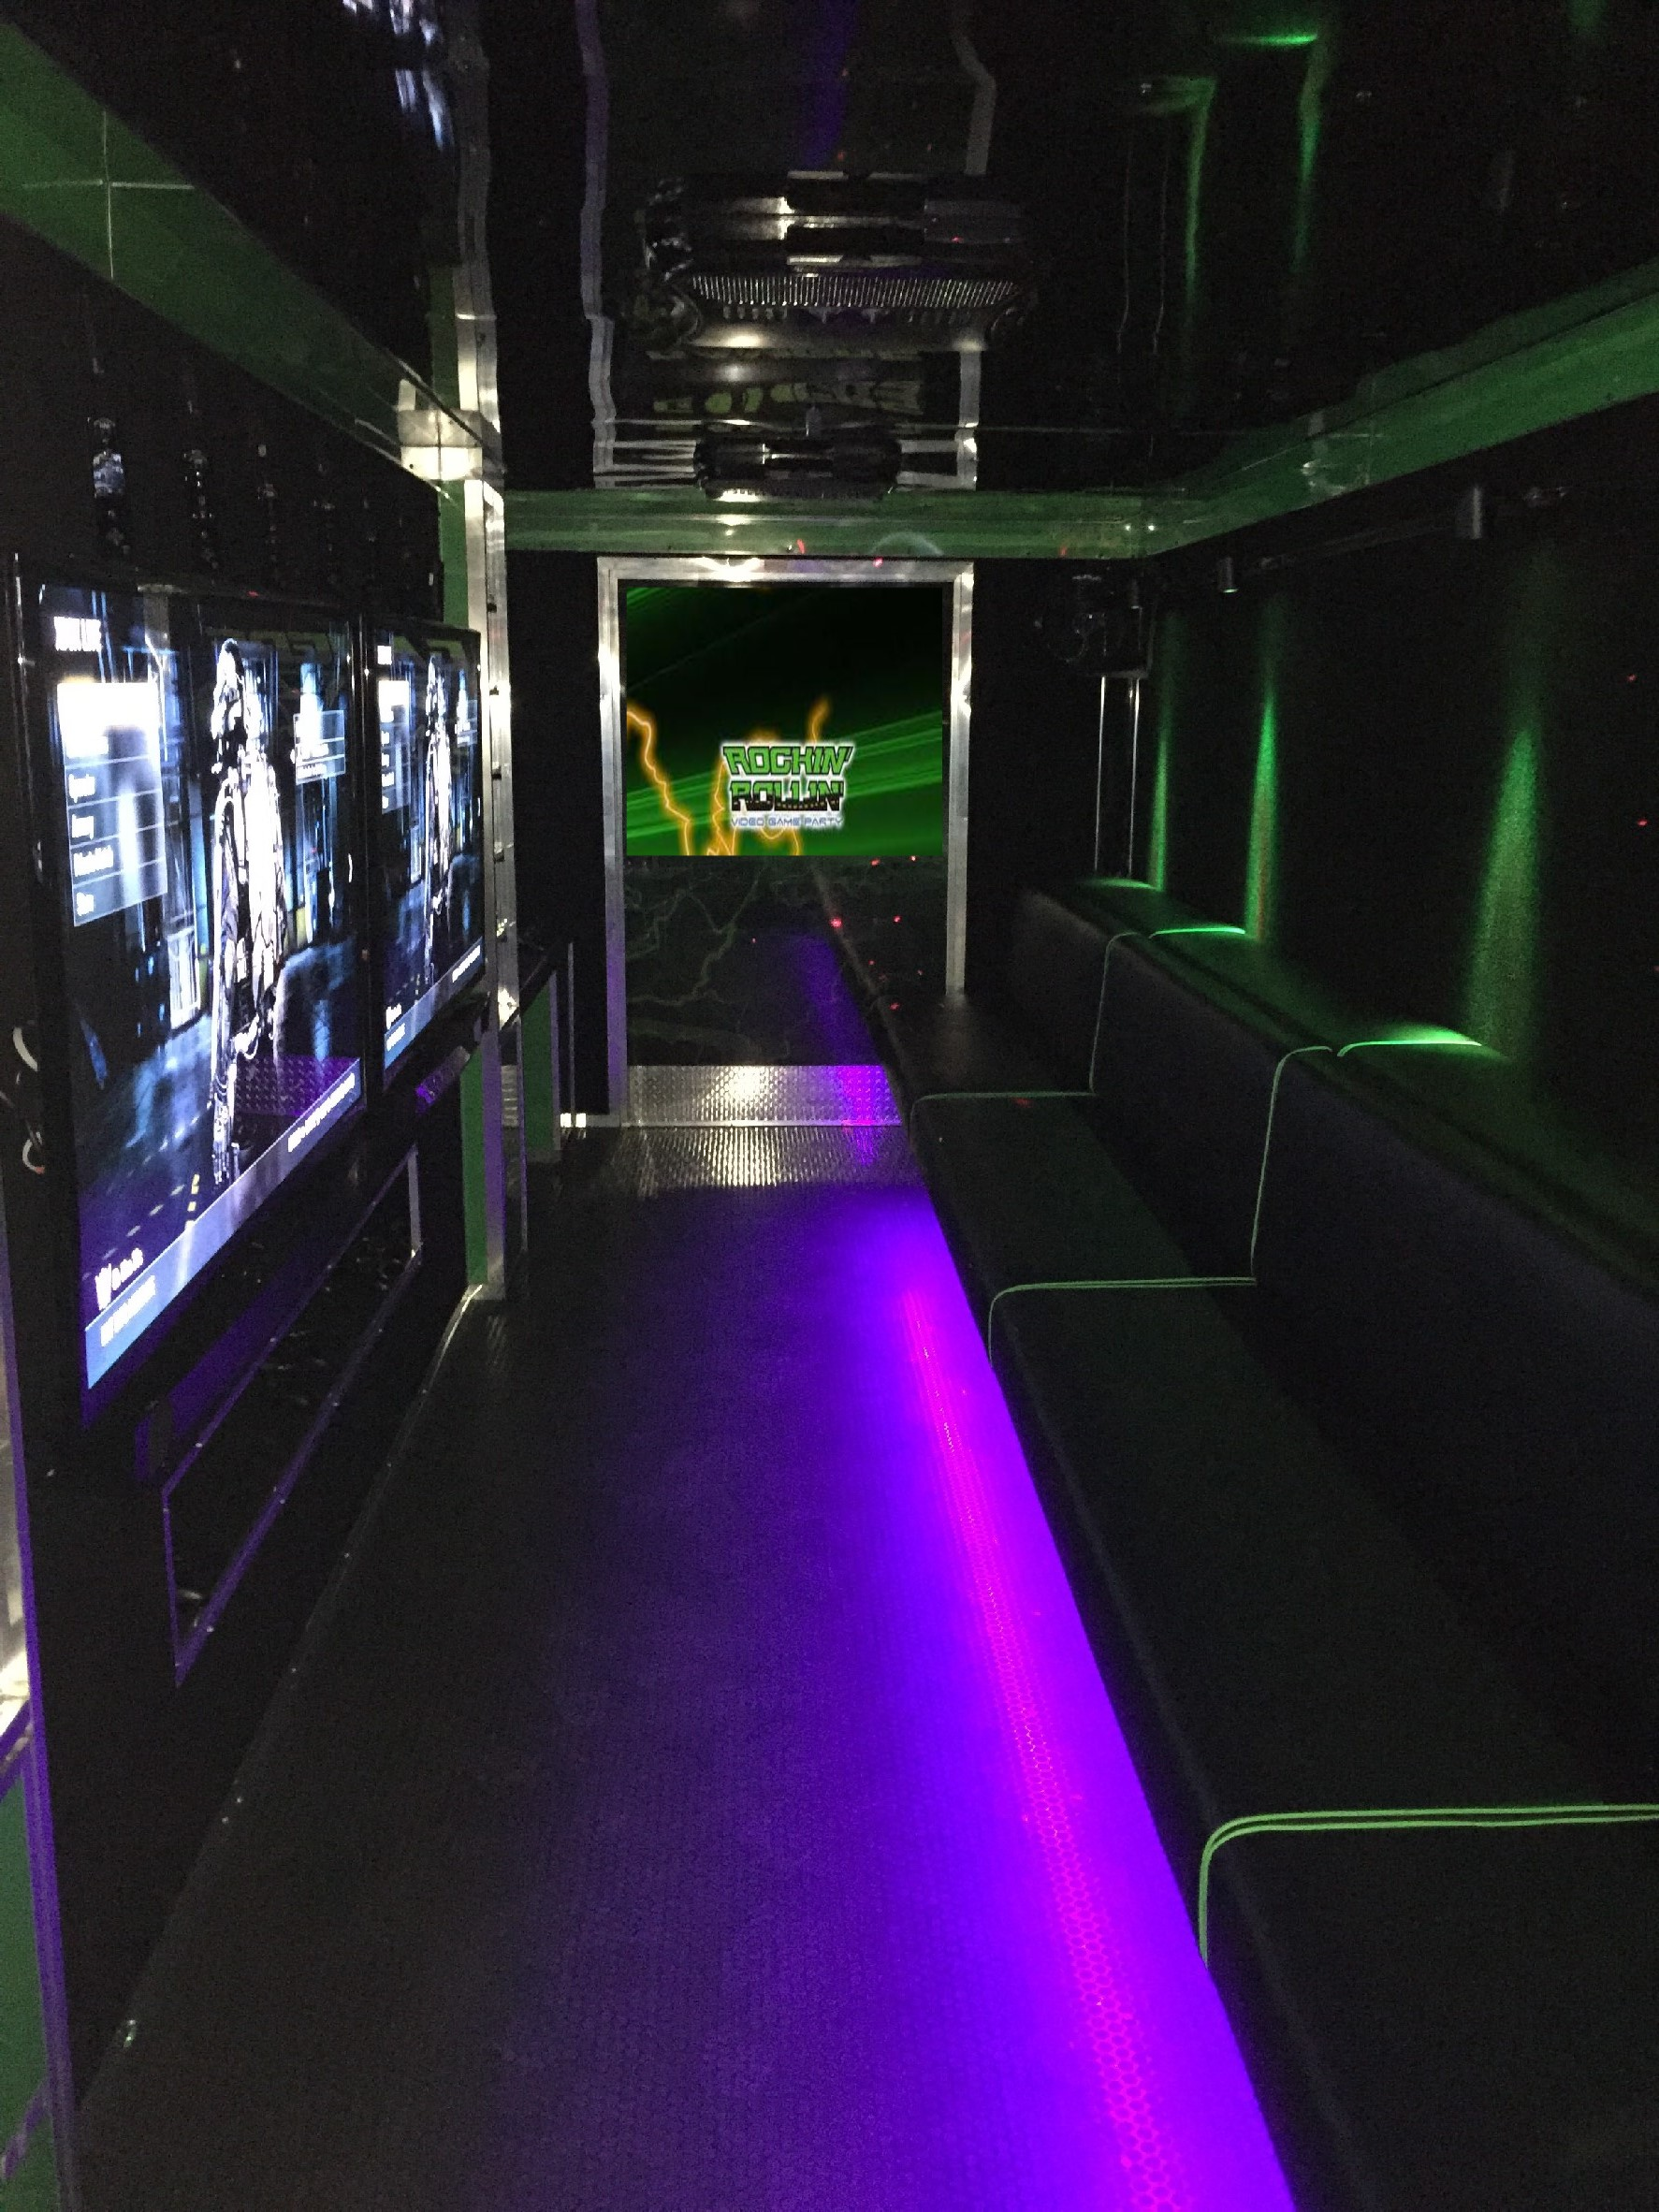 2015-pre-owned-7-tv-arctic-green-video-game-theater-interior-website